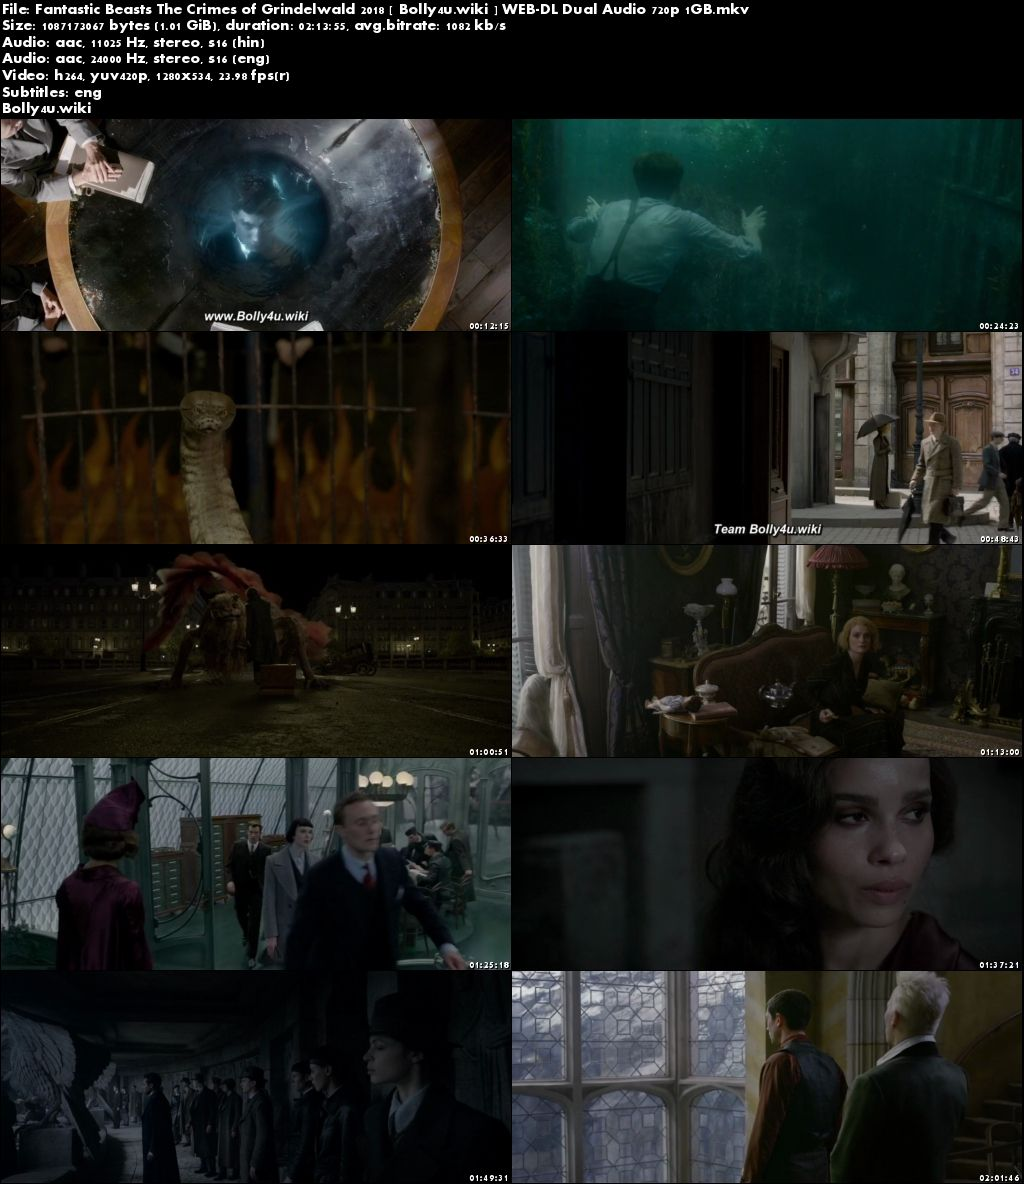 Fantastic Beasts The Crimes of Grindelwald 2018 WEB-DL 400MB Hindi Dual Audio 480p Download